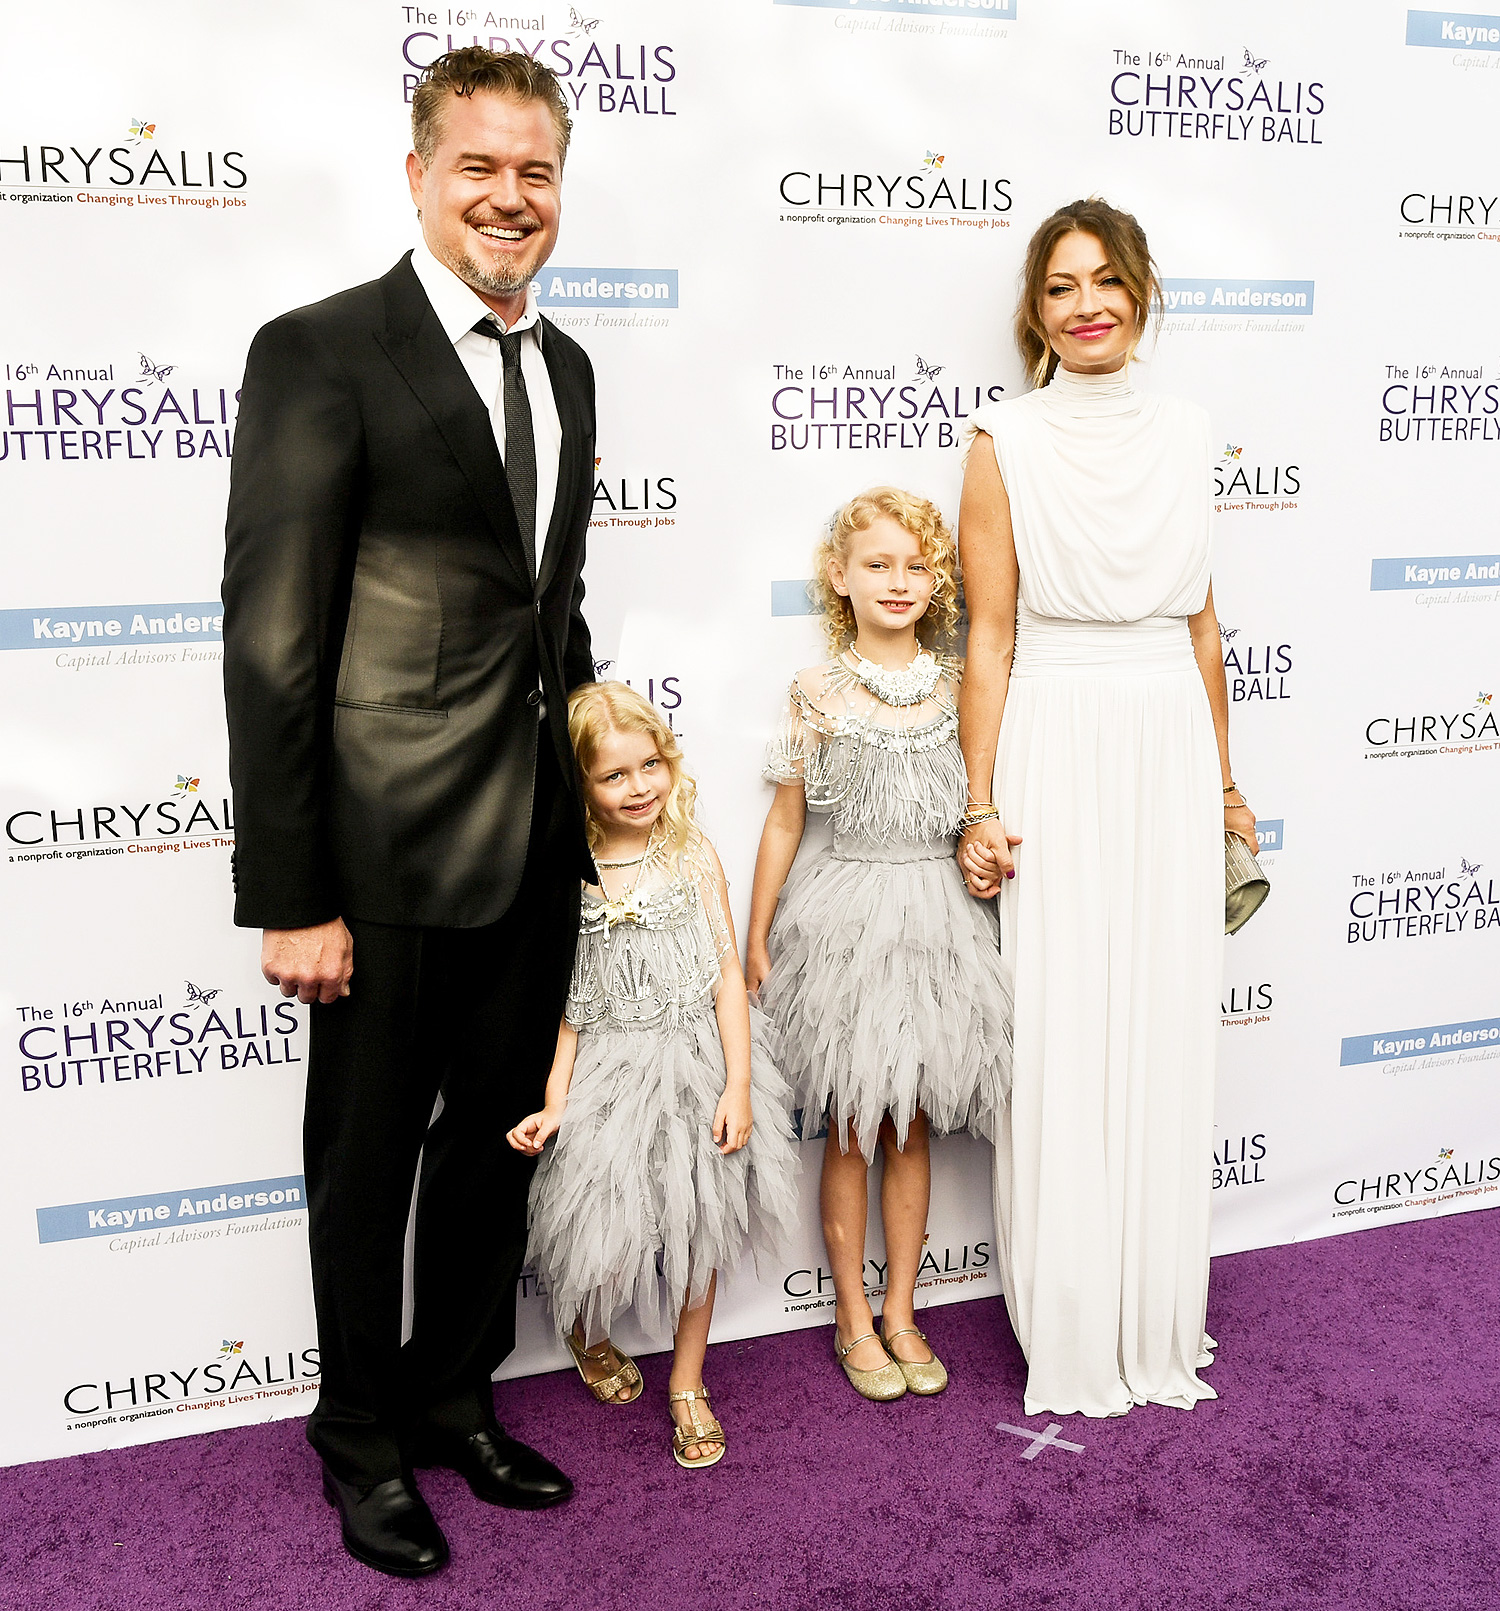 16th Annual Chrysalis Butterfly Ball, Los Angeles, USA - 03 Jun 2017